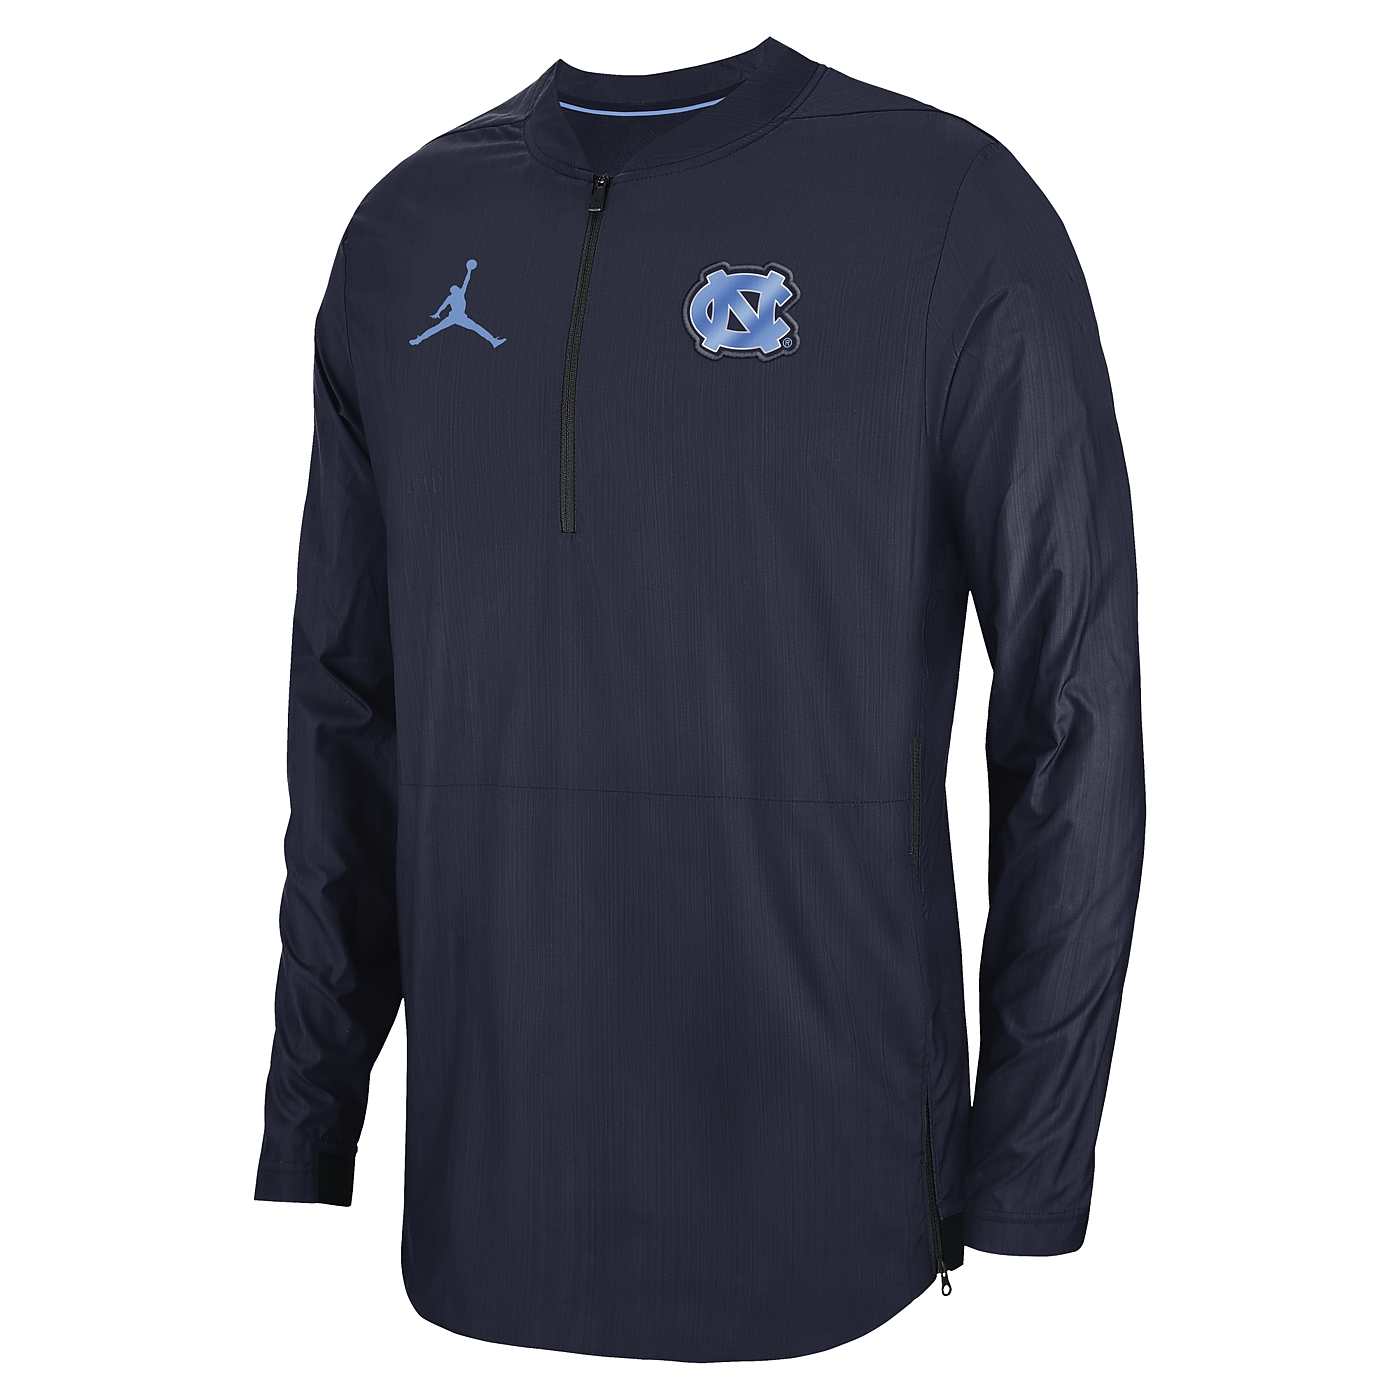 aa221cd7923a Johnny T-shirt - North Carolina Tar Heels - SALE ITEMS - Nike Jumpman  Lockdown 1 4-Zip Pullover Jacket (Navy) by Nike